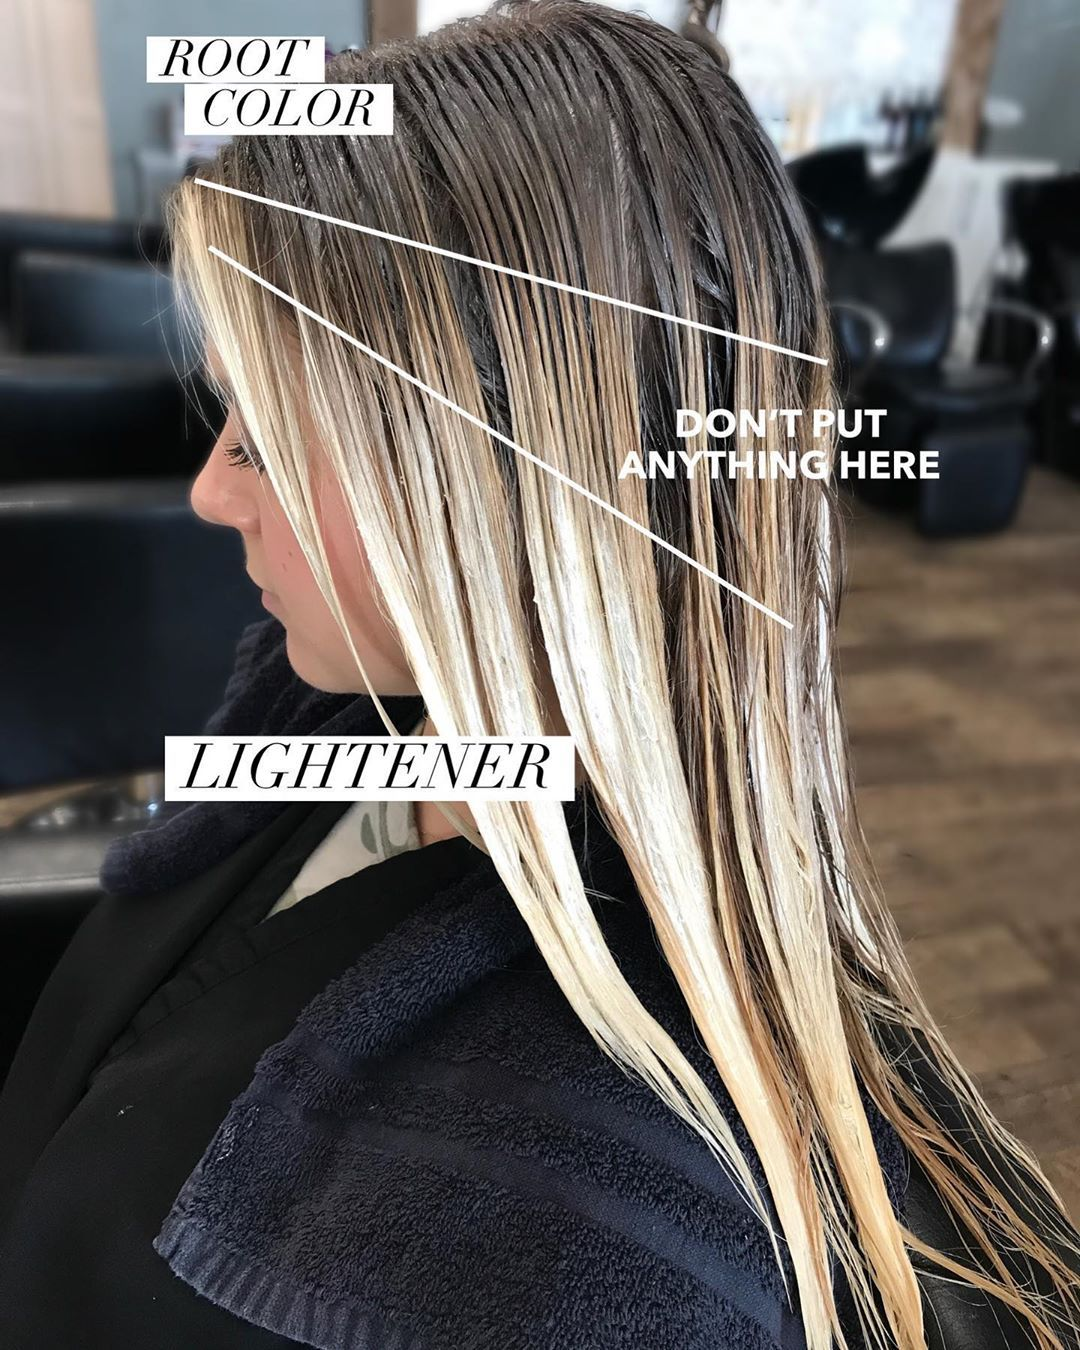 San Diego Hair Stylist On Instagram Want To Avoid Warmth When You Re Root Shadowing Color Melting Hair Color Techniques Color Melting Hair Hair Techniques